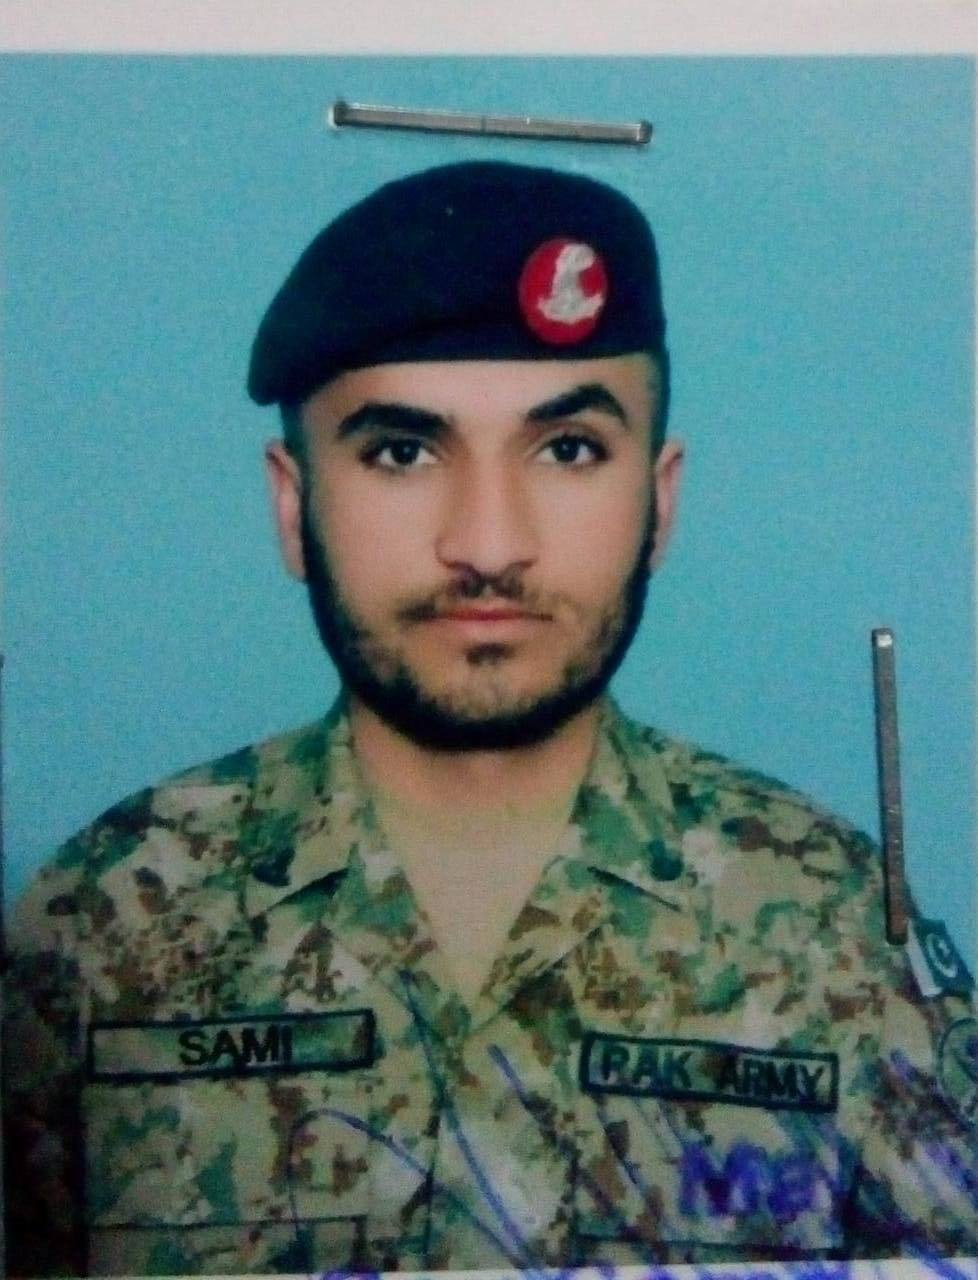 Sepoy Samiullah of GB's Hunza district was unmarried.